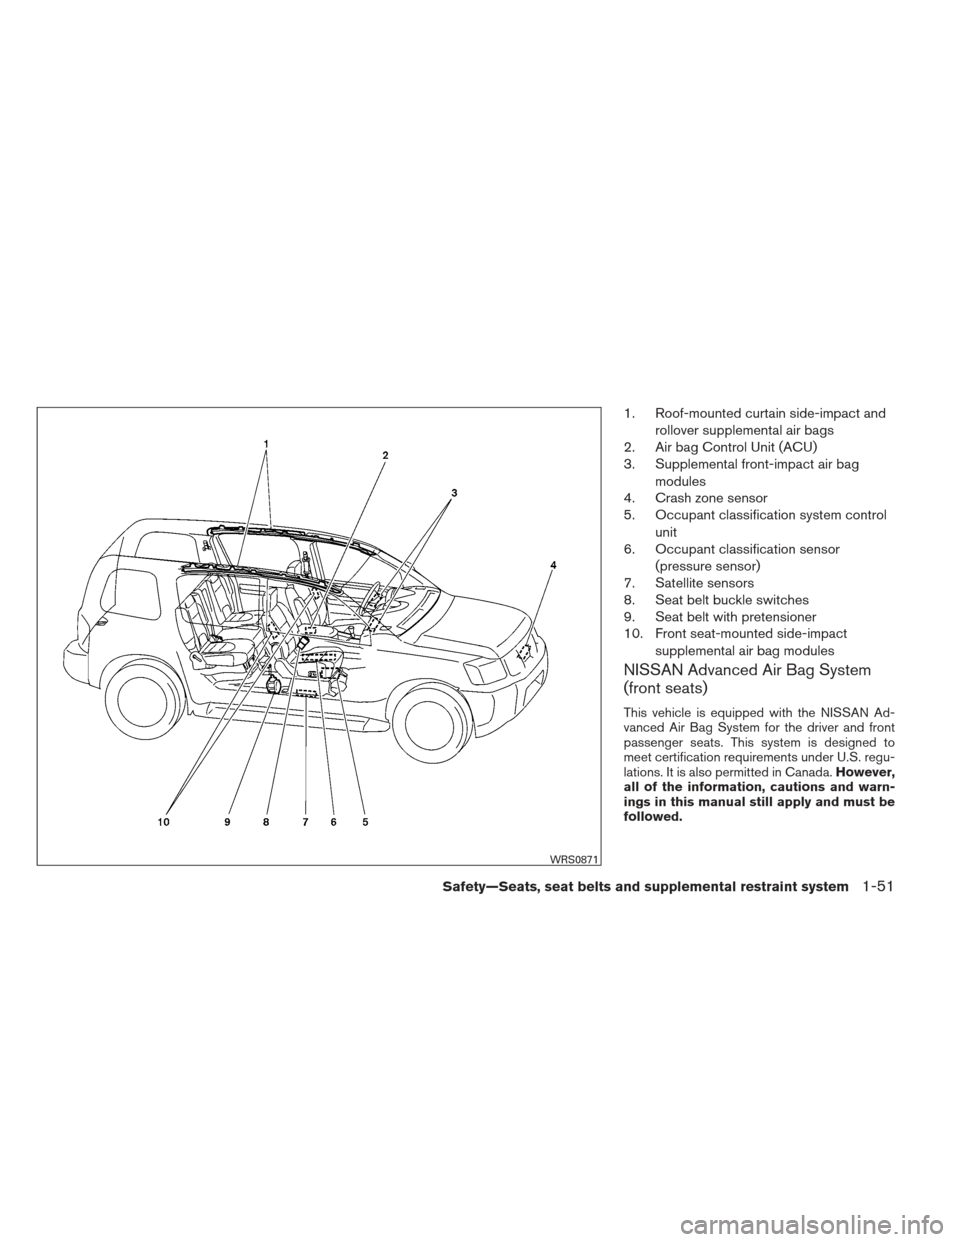 NISSAN XTERRA 2012 N50 / 2.G Repair Manual 1. Roof-mounted curtain side-impact androllover supplemental air bags 2. Air bag Control Unit (ACU) 3. Supplemental front-impact air bag modules 4. Crash zone sensor 5. Occupant classification system